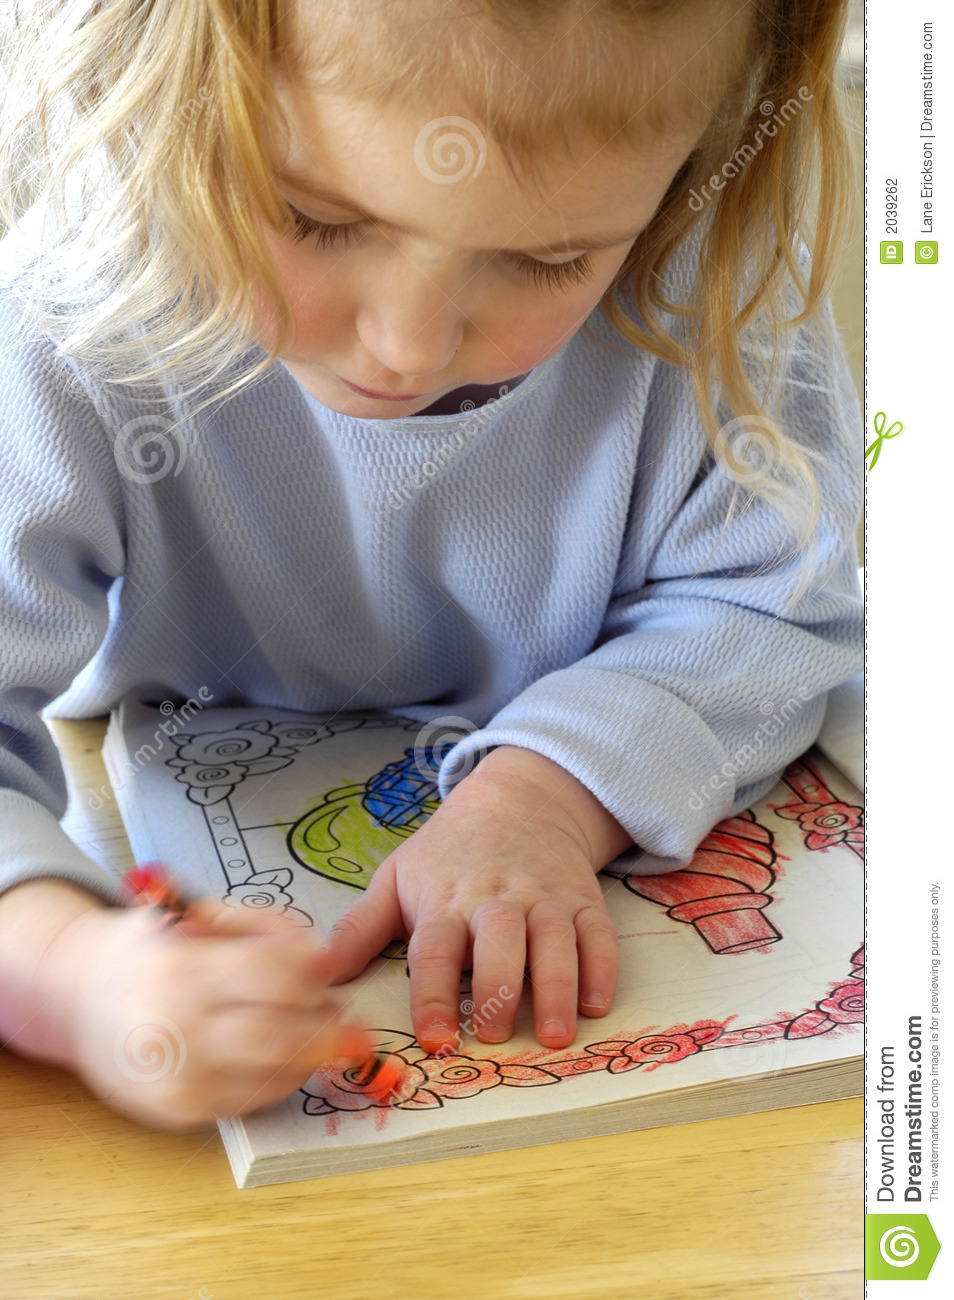 Download Coloring In Book Stock Photo Image Of Grow